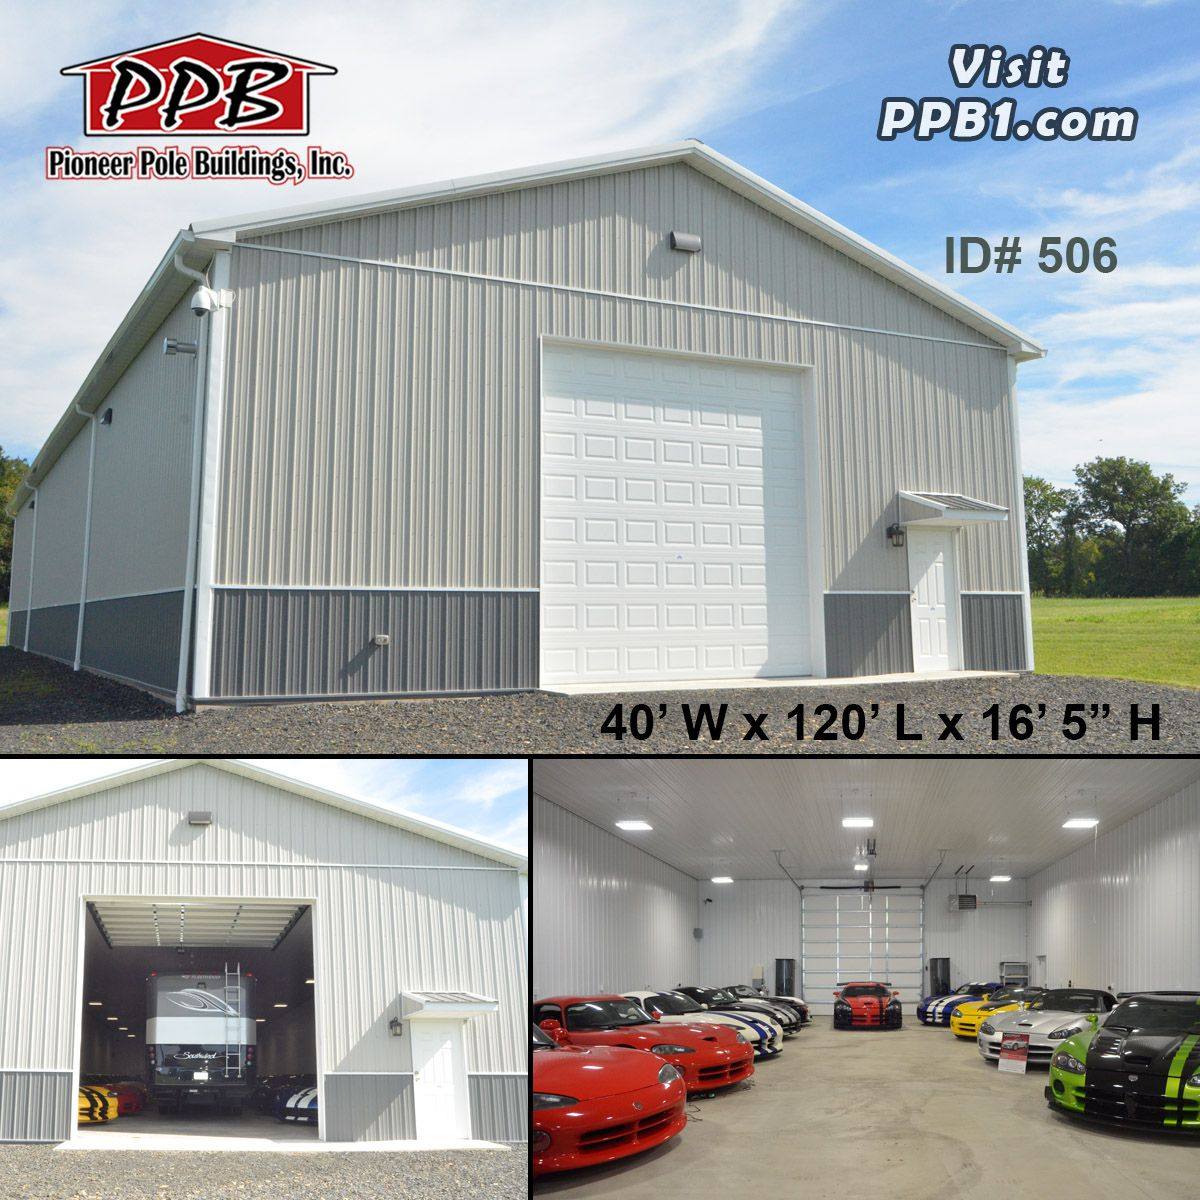 Check Out This 40 W X 120 L X 16 5 H Building Colors Siding Upper Color Ash Gray Lower Color Charcoal Roo Shed Design Pole Buildings Insulated Panels